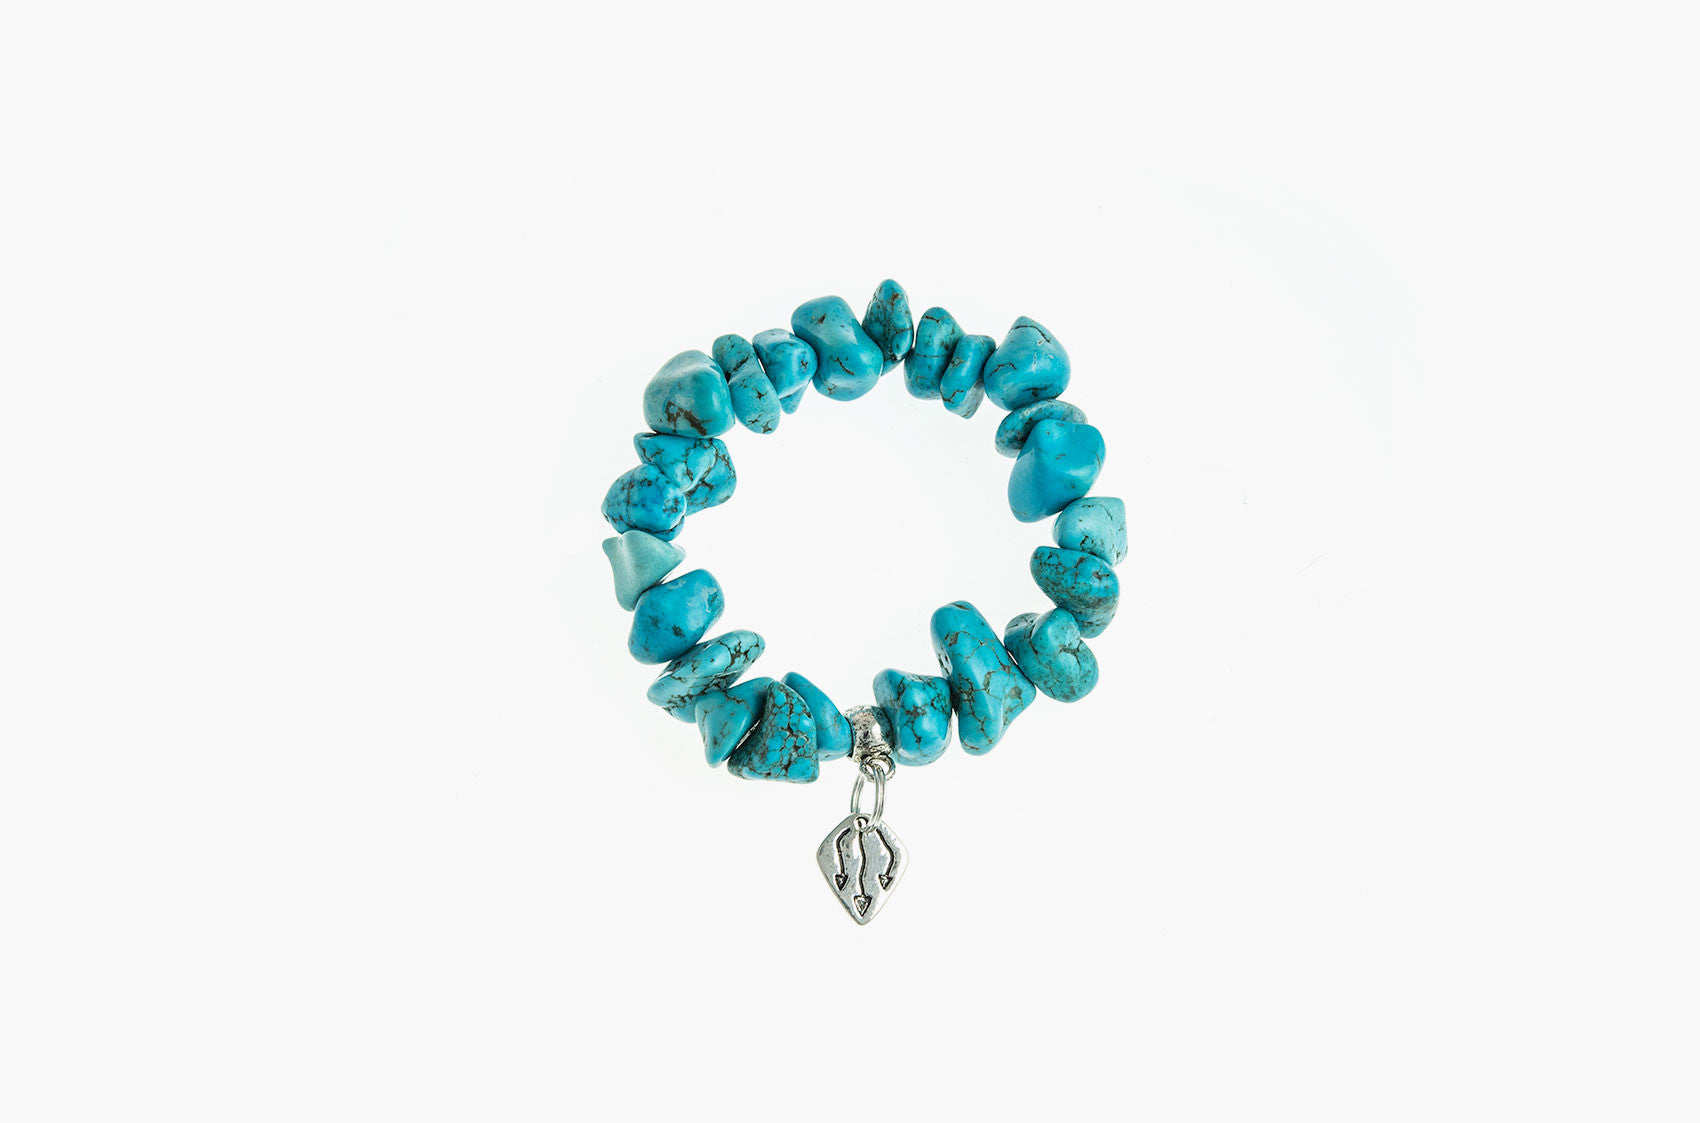 Pewter & Stone. Turquoise and pewter bracelet